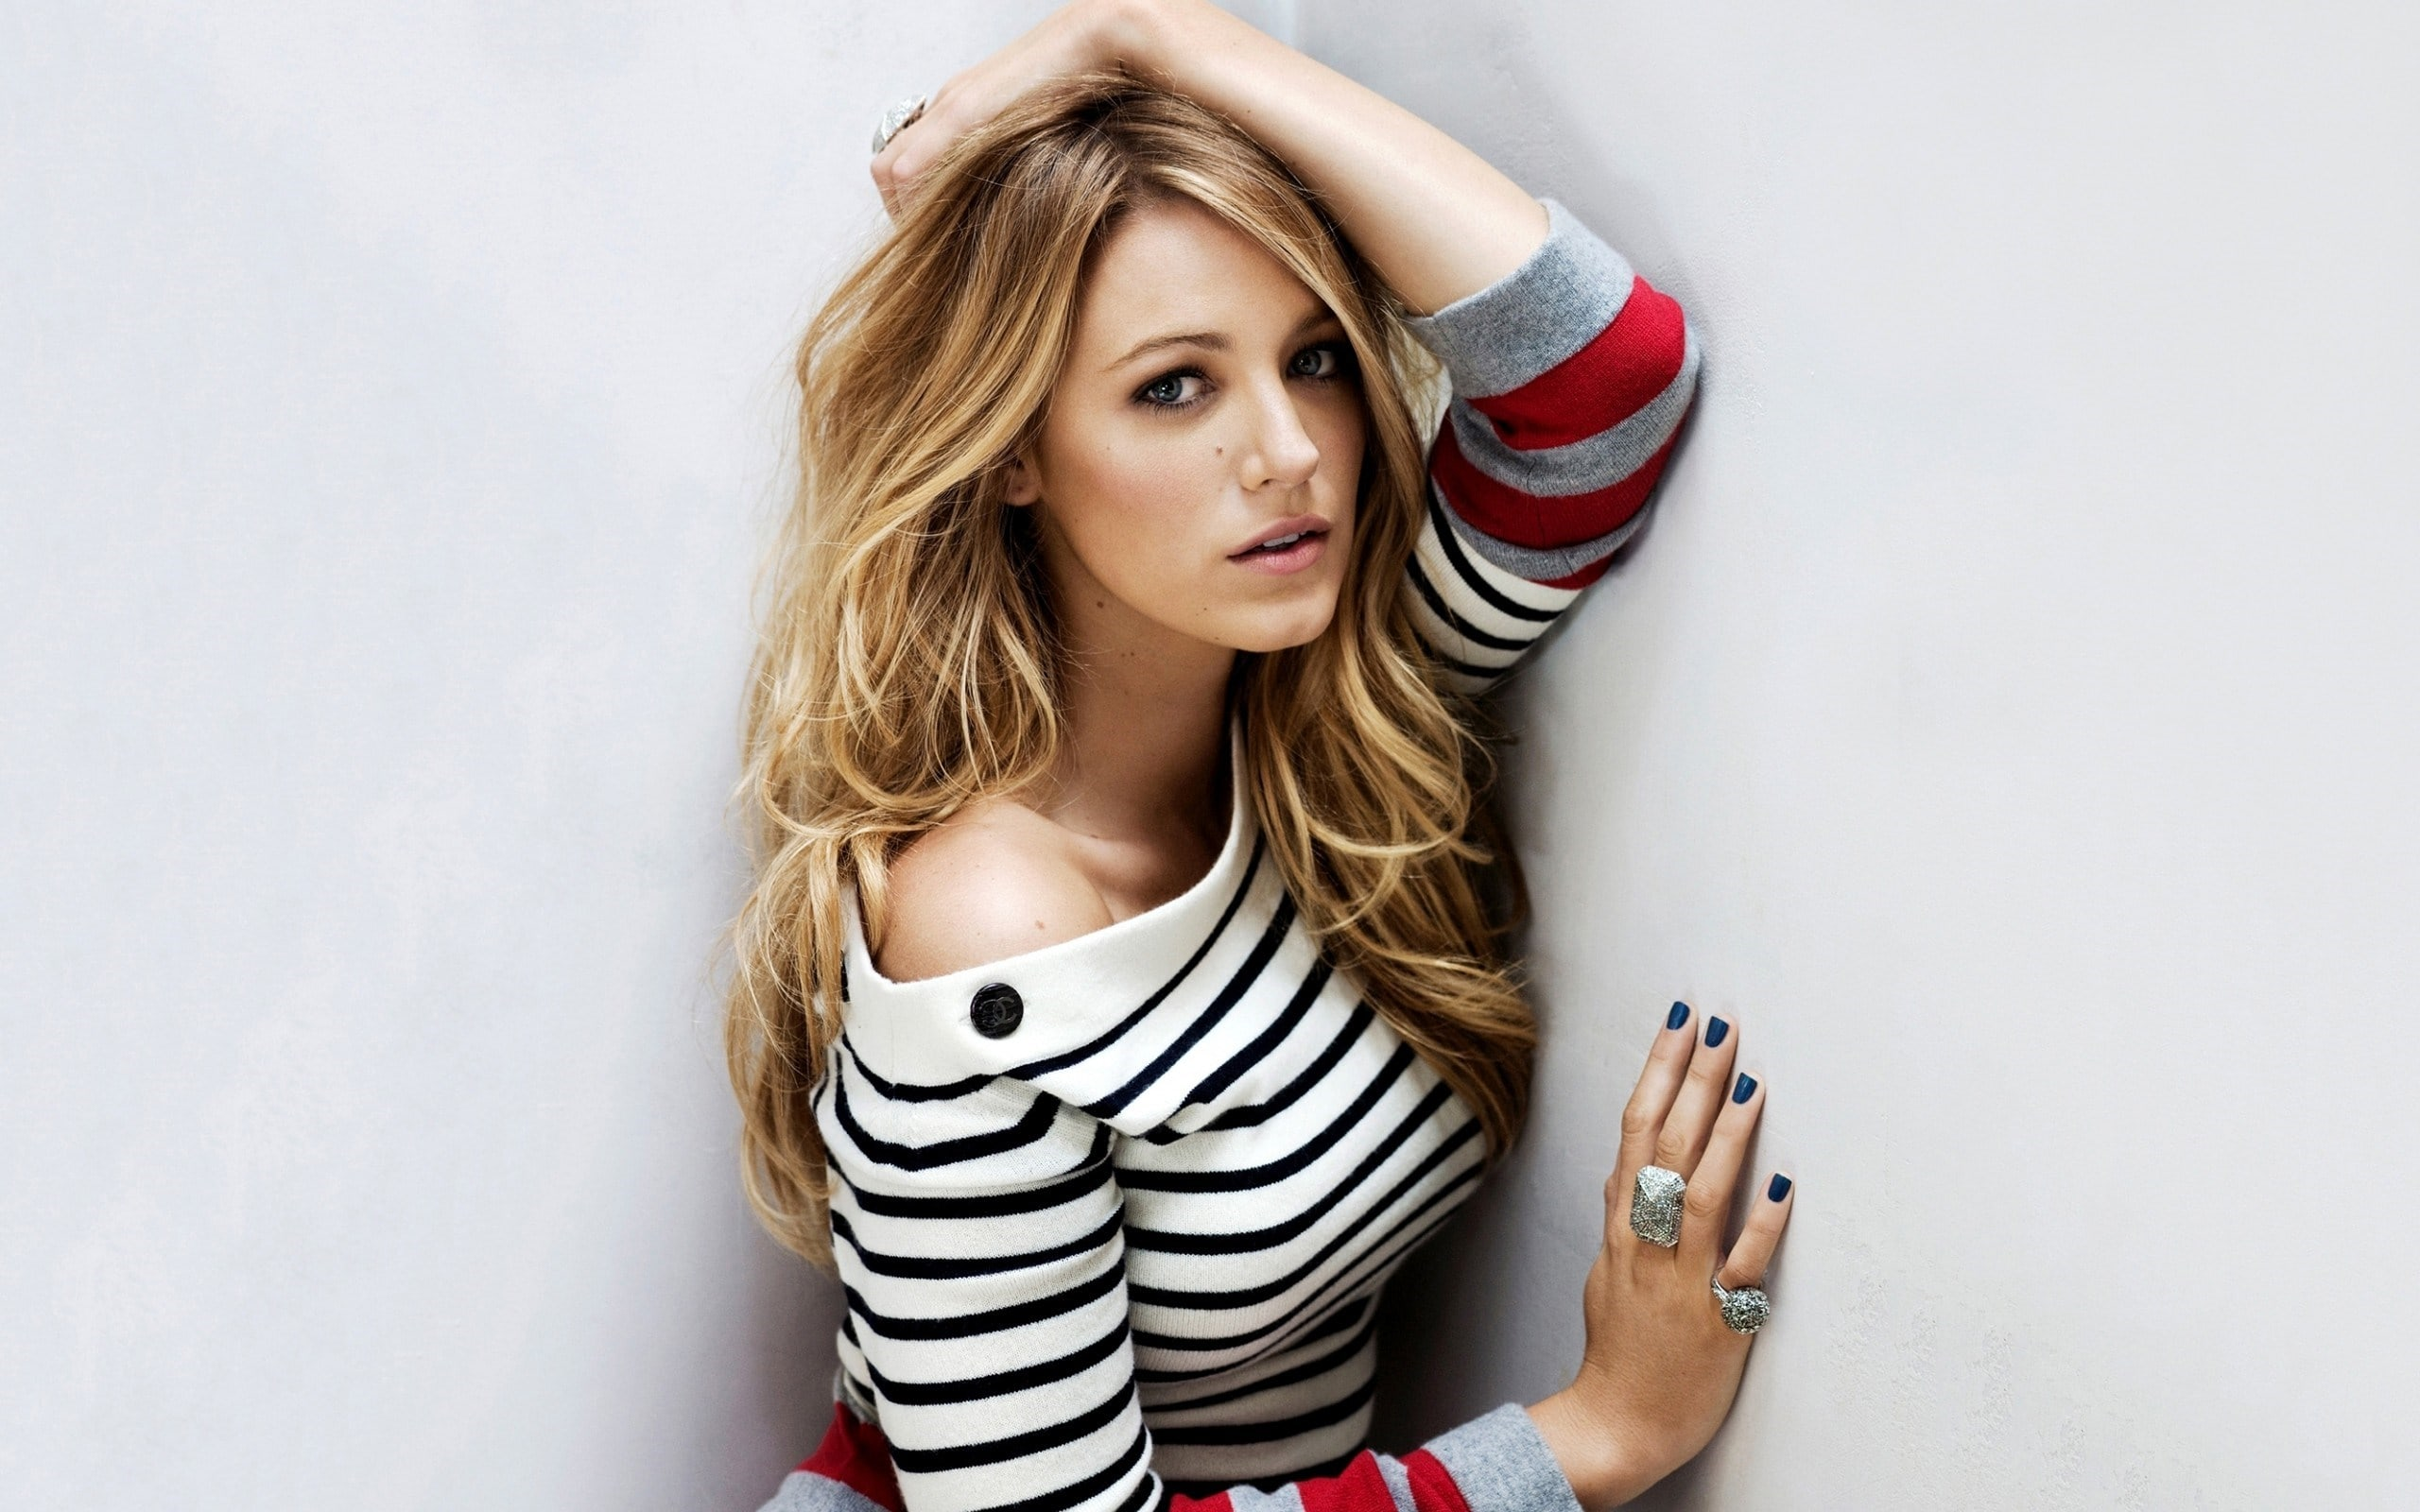 2560x1600 - Blake Lively Wallpapers 2